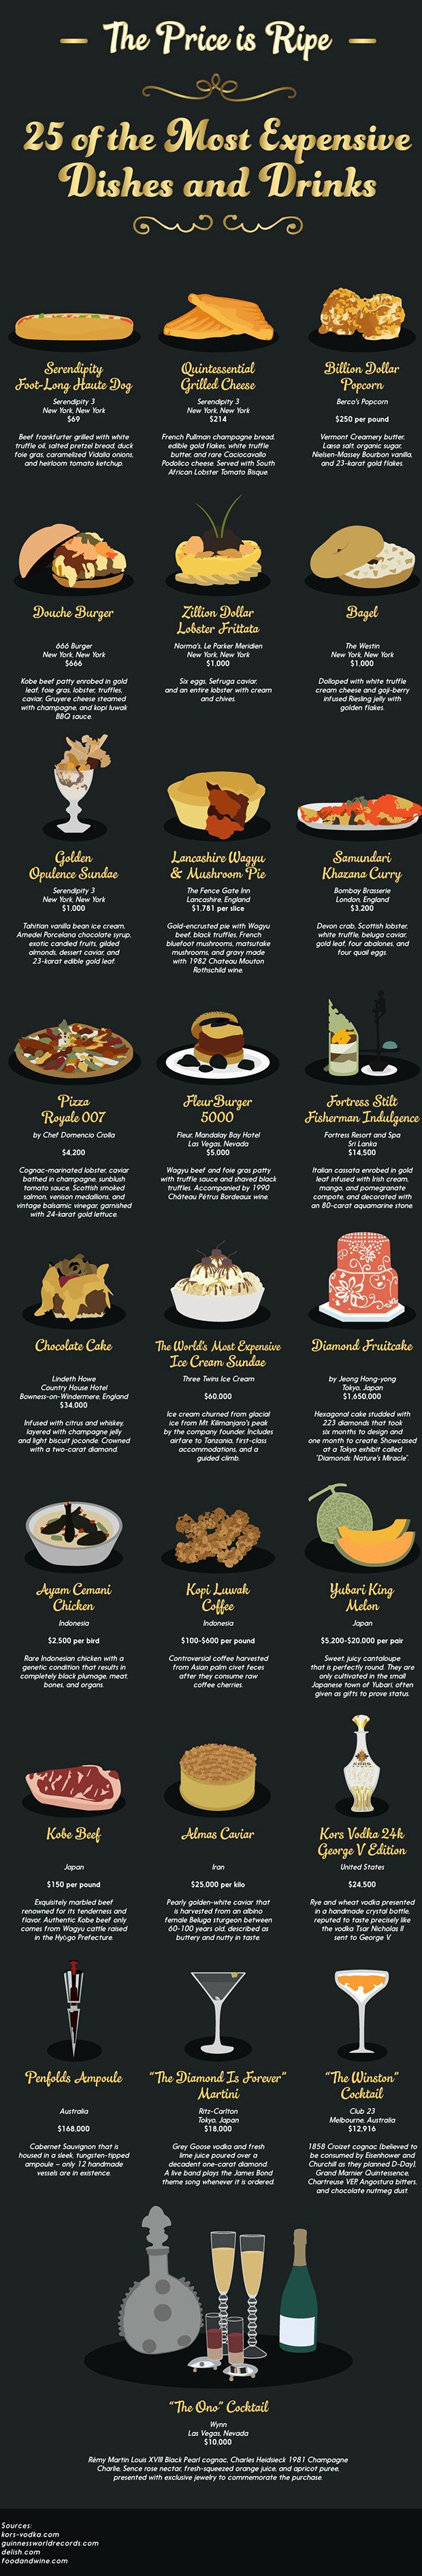 65 25 Most Expensive Dishes and Drinks